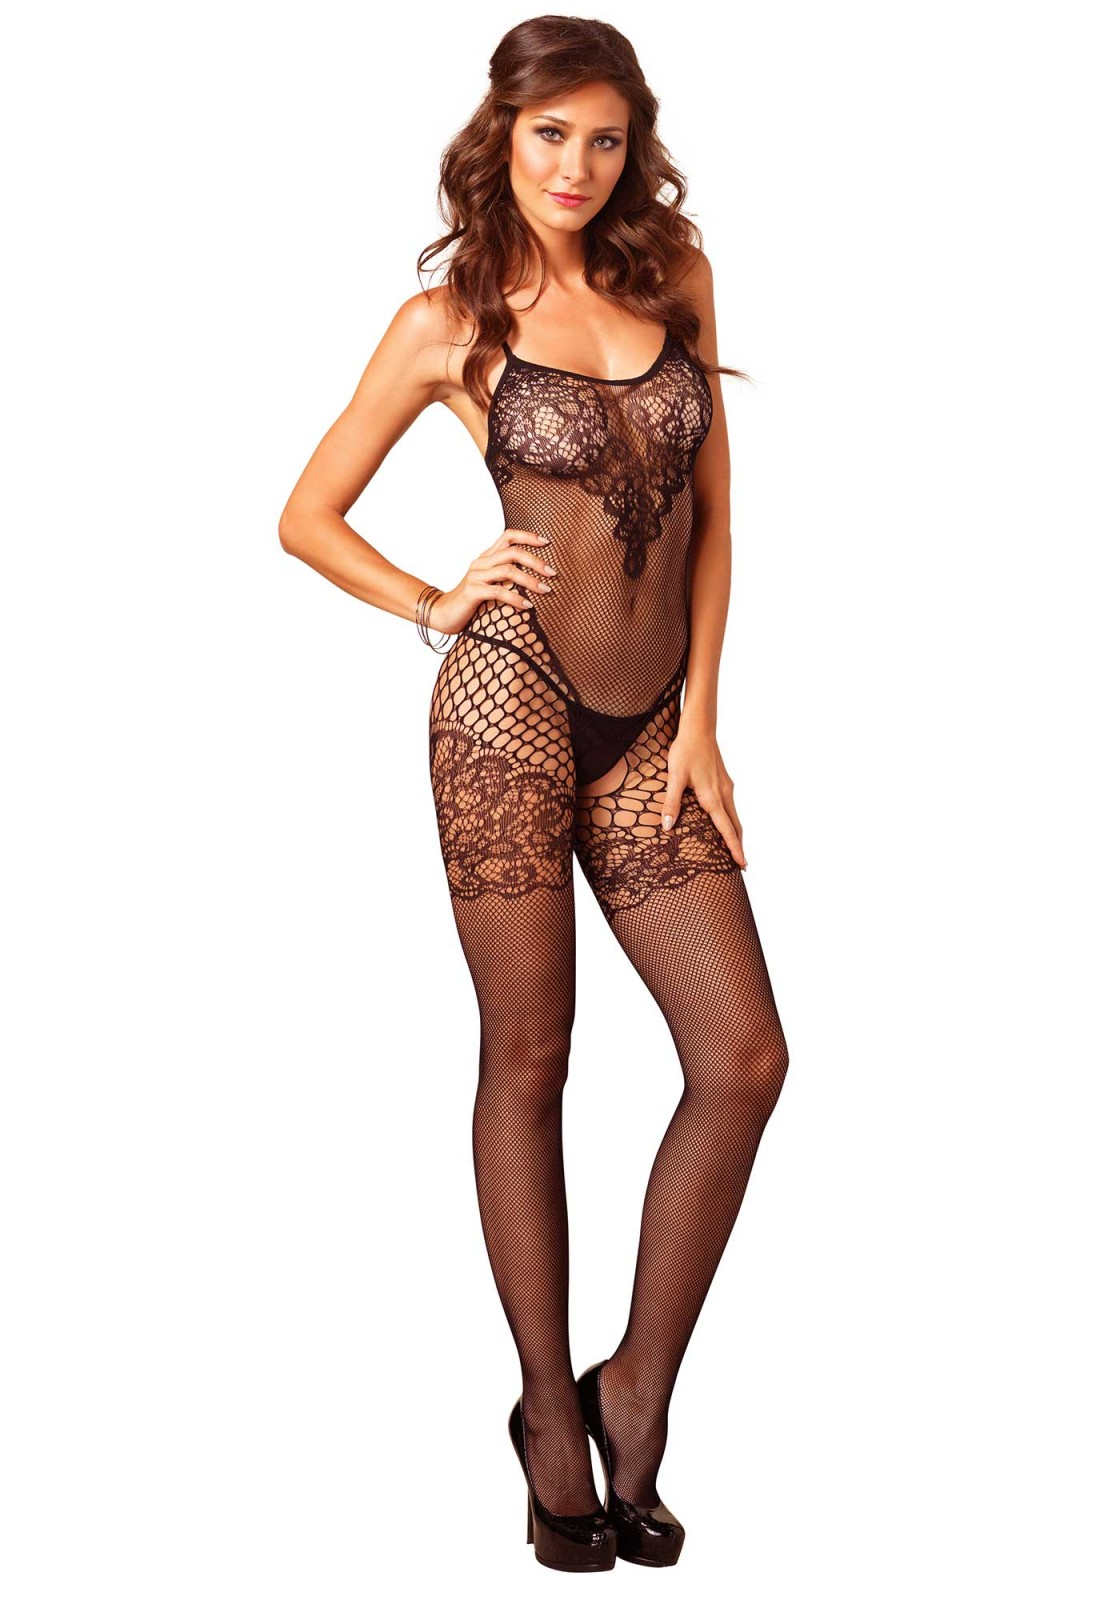 Sultry brunette model Roxy Raye posing in mesh bodystocking and glasses  267787